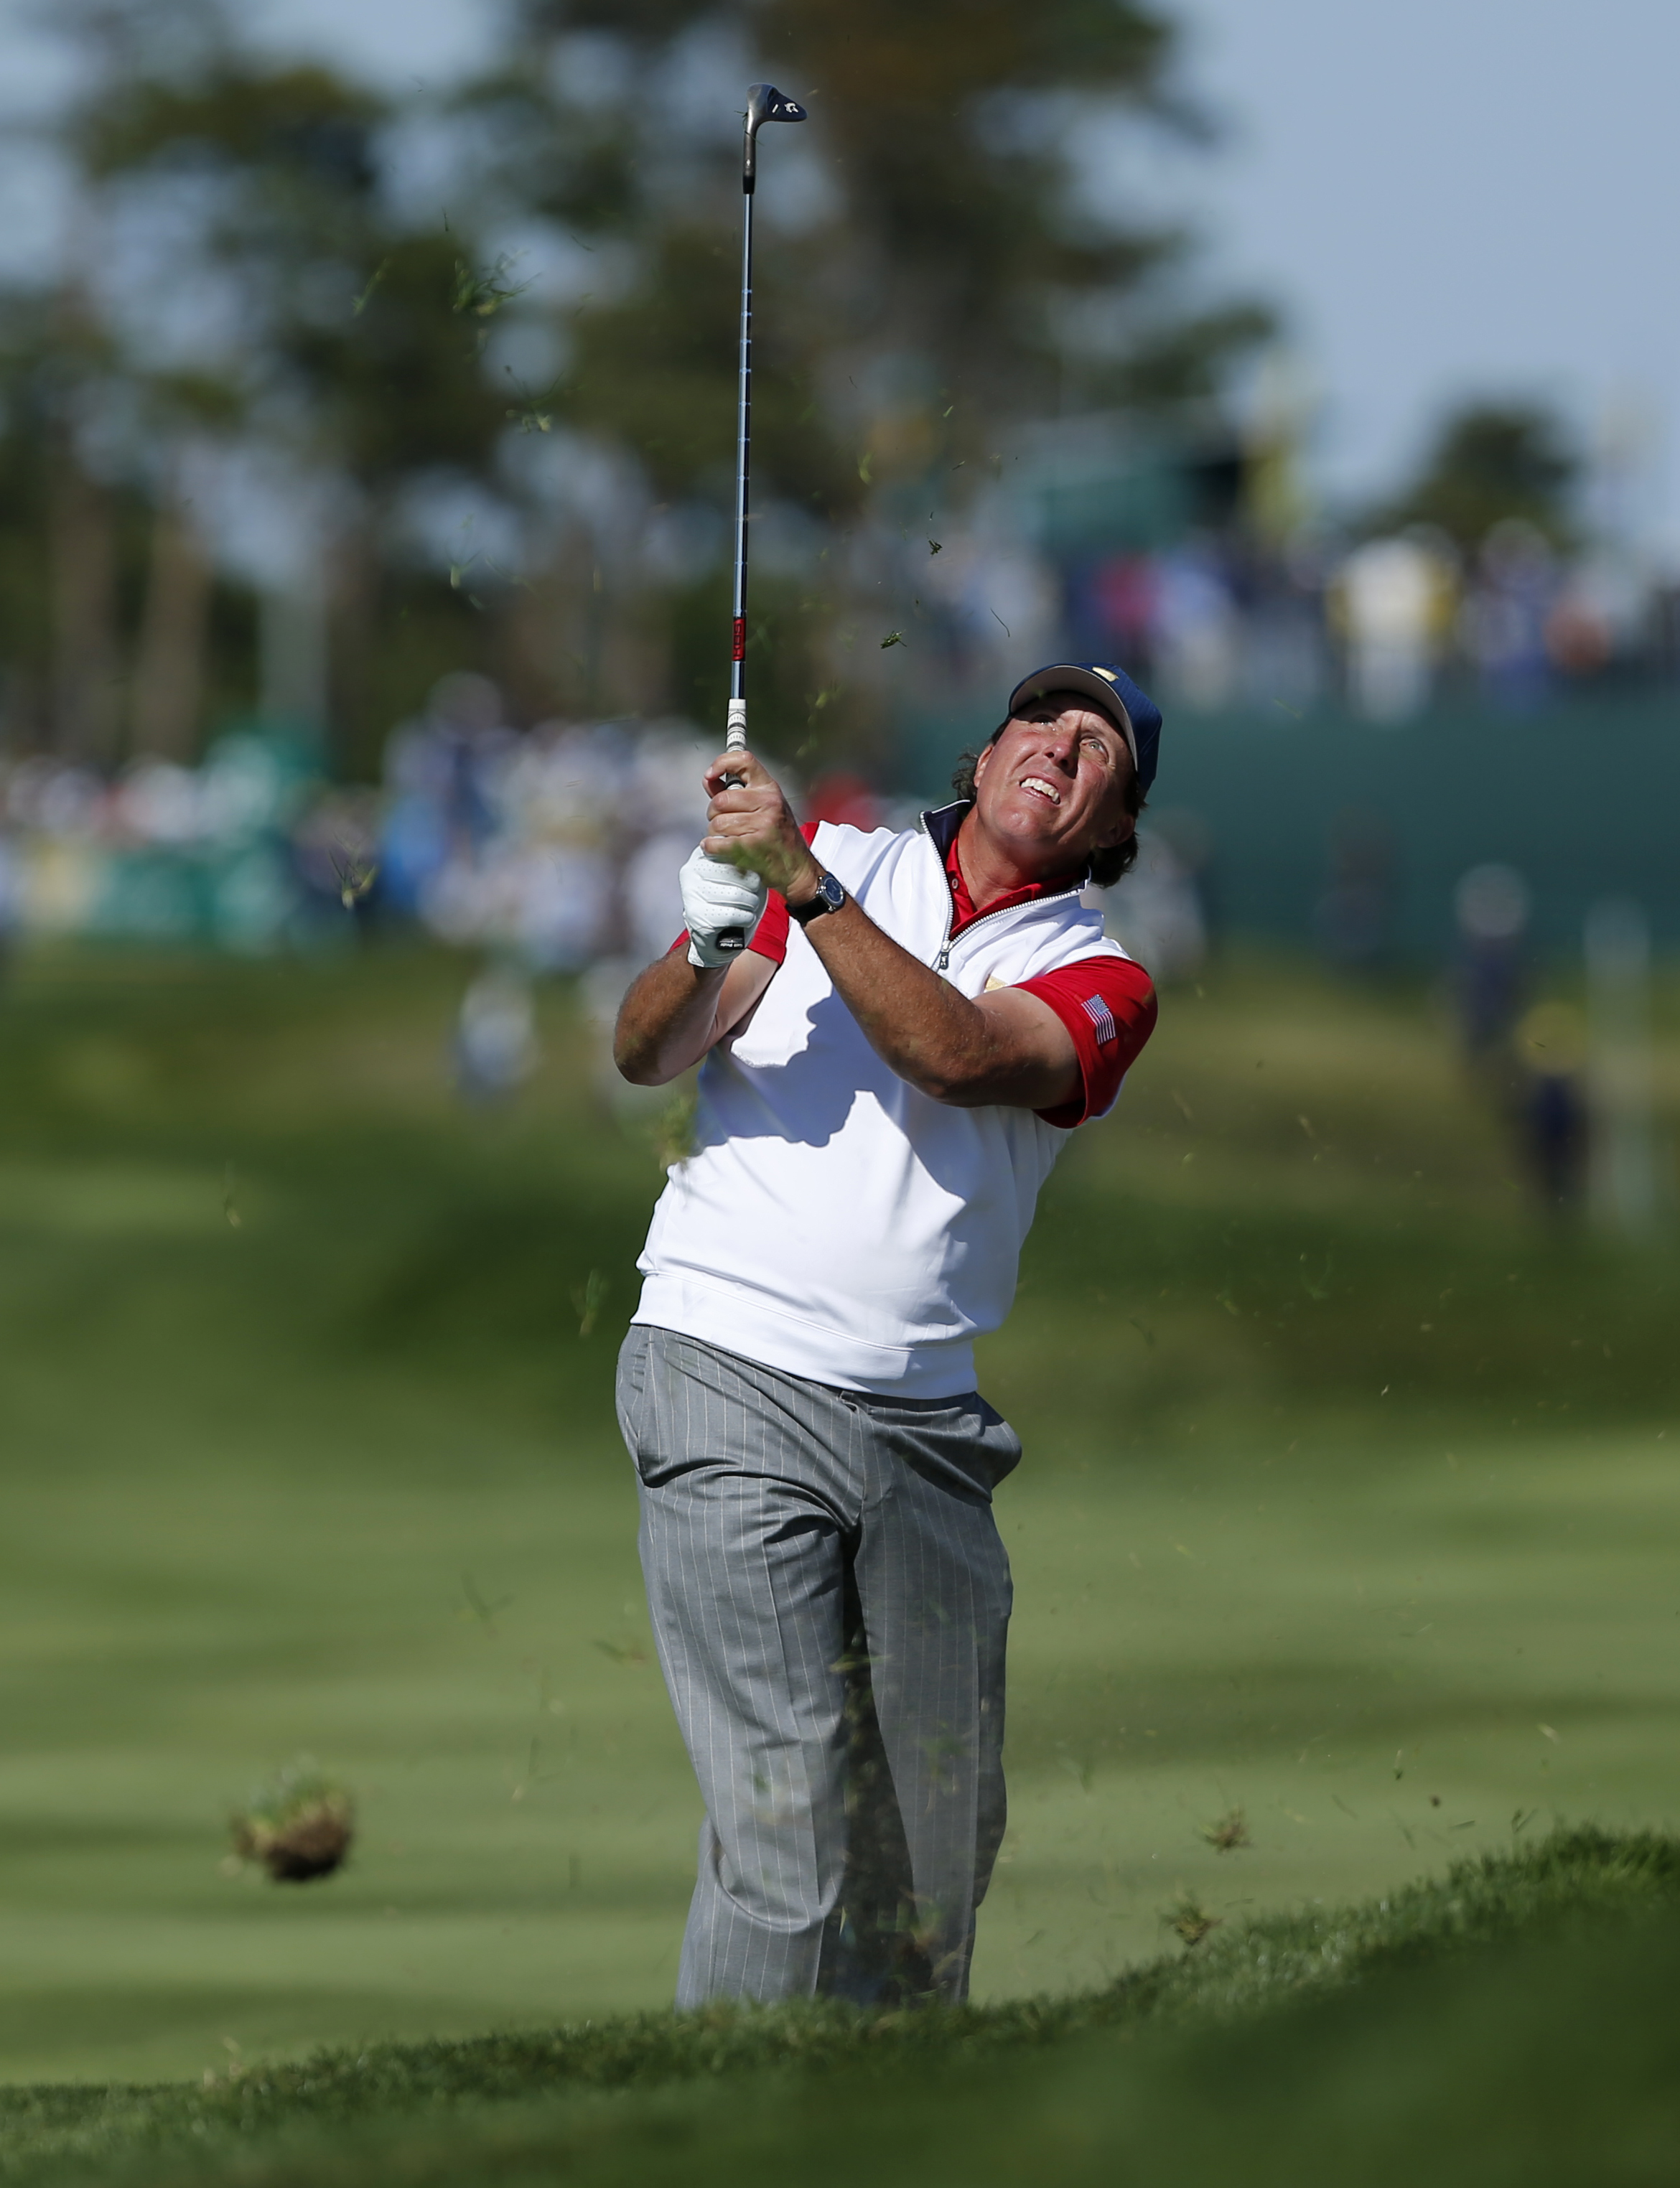 United States' Phil Mickelson hits from the rough on the second hole during his four ball match at the Presidents Cup golf tournament at the Jack Nicklaus Golf Club Korea, in Incheon, South Korea, Friday, Oct. 9, 2015.(AP Photo/Woohae Cho)